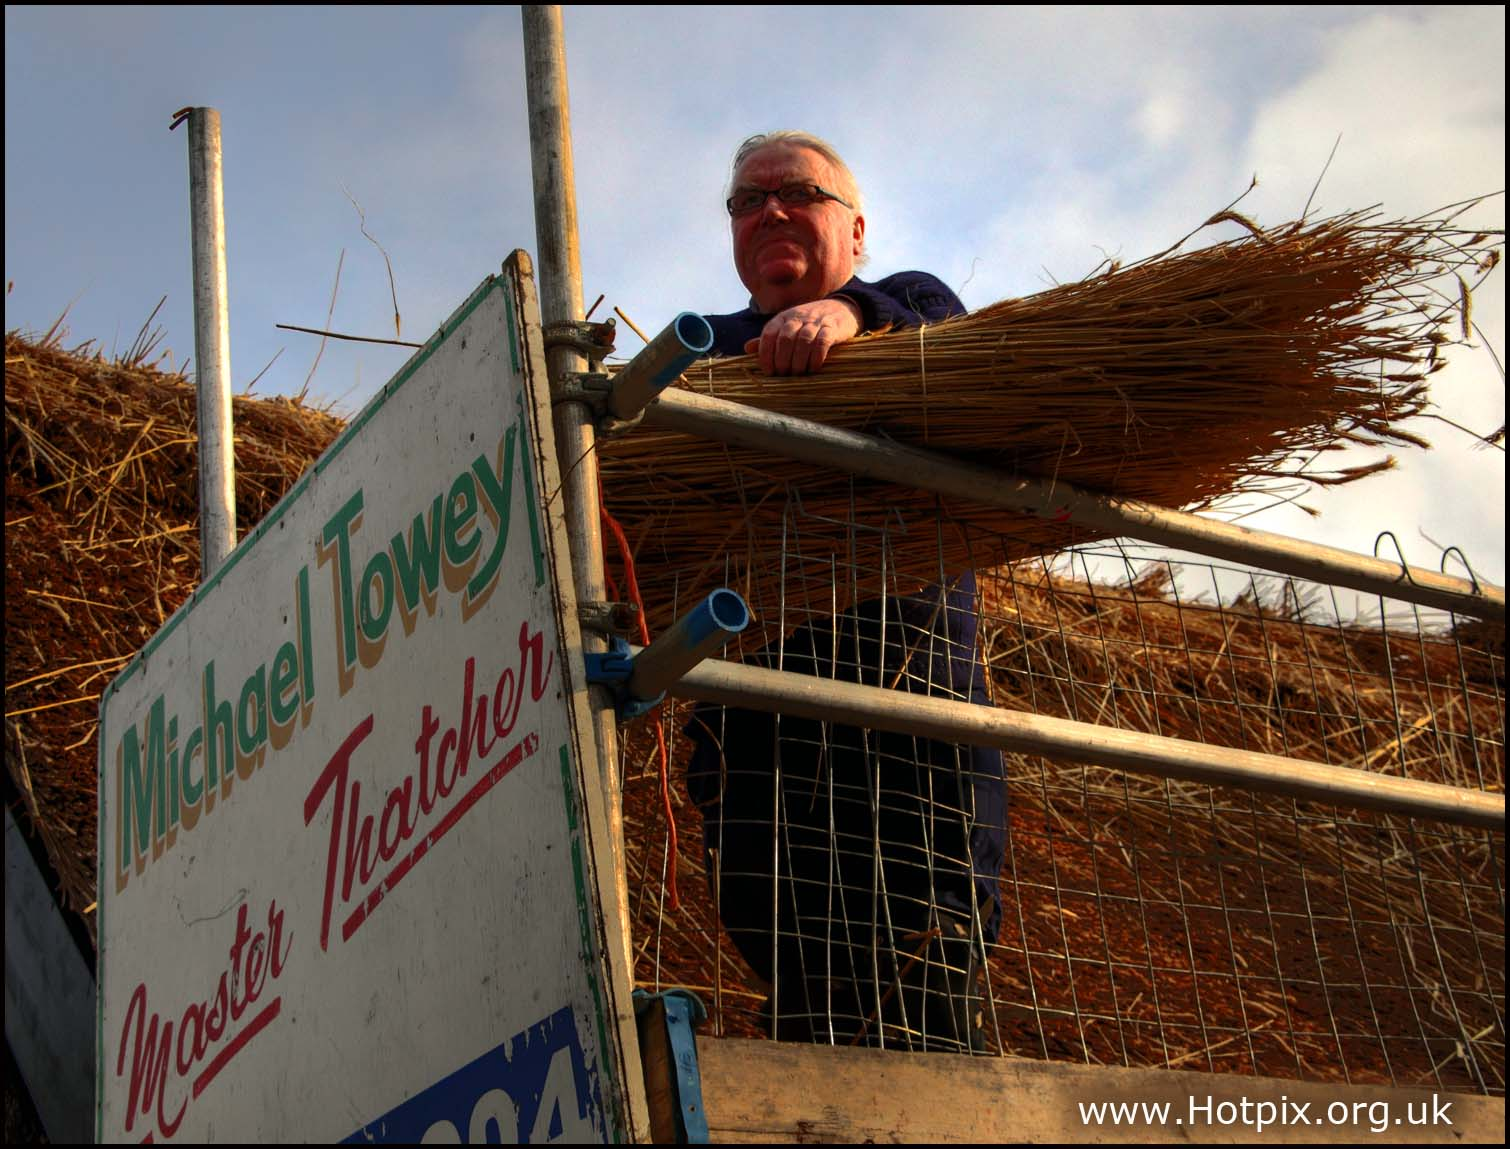 Mike,Michael,Towey,master,thatcher,thatch,thatched,cottage,house,rural,agricultural,chester,cheshire,plumley,A556,Knutsford,Northwich,England,English,UK,Britain,GB,man,male,portrait,sunny,winter,January,jan,this photo rocks,HDR,high dynamic range,Chehire,hotpics,hotpic,hotpick,hotpicks,building,buildings,built,architecture,hotpix!,@hotpixuk